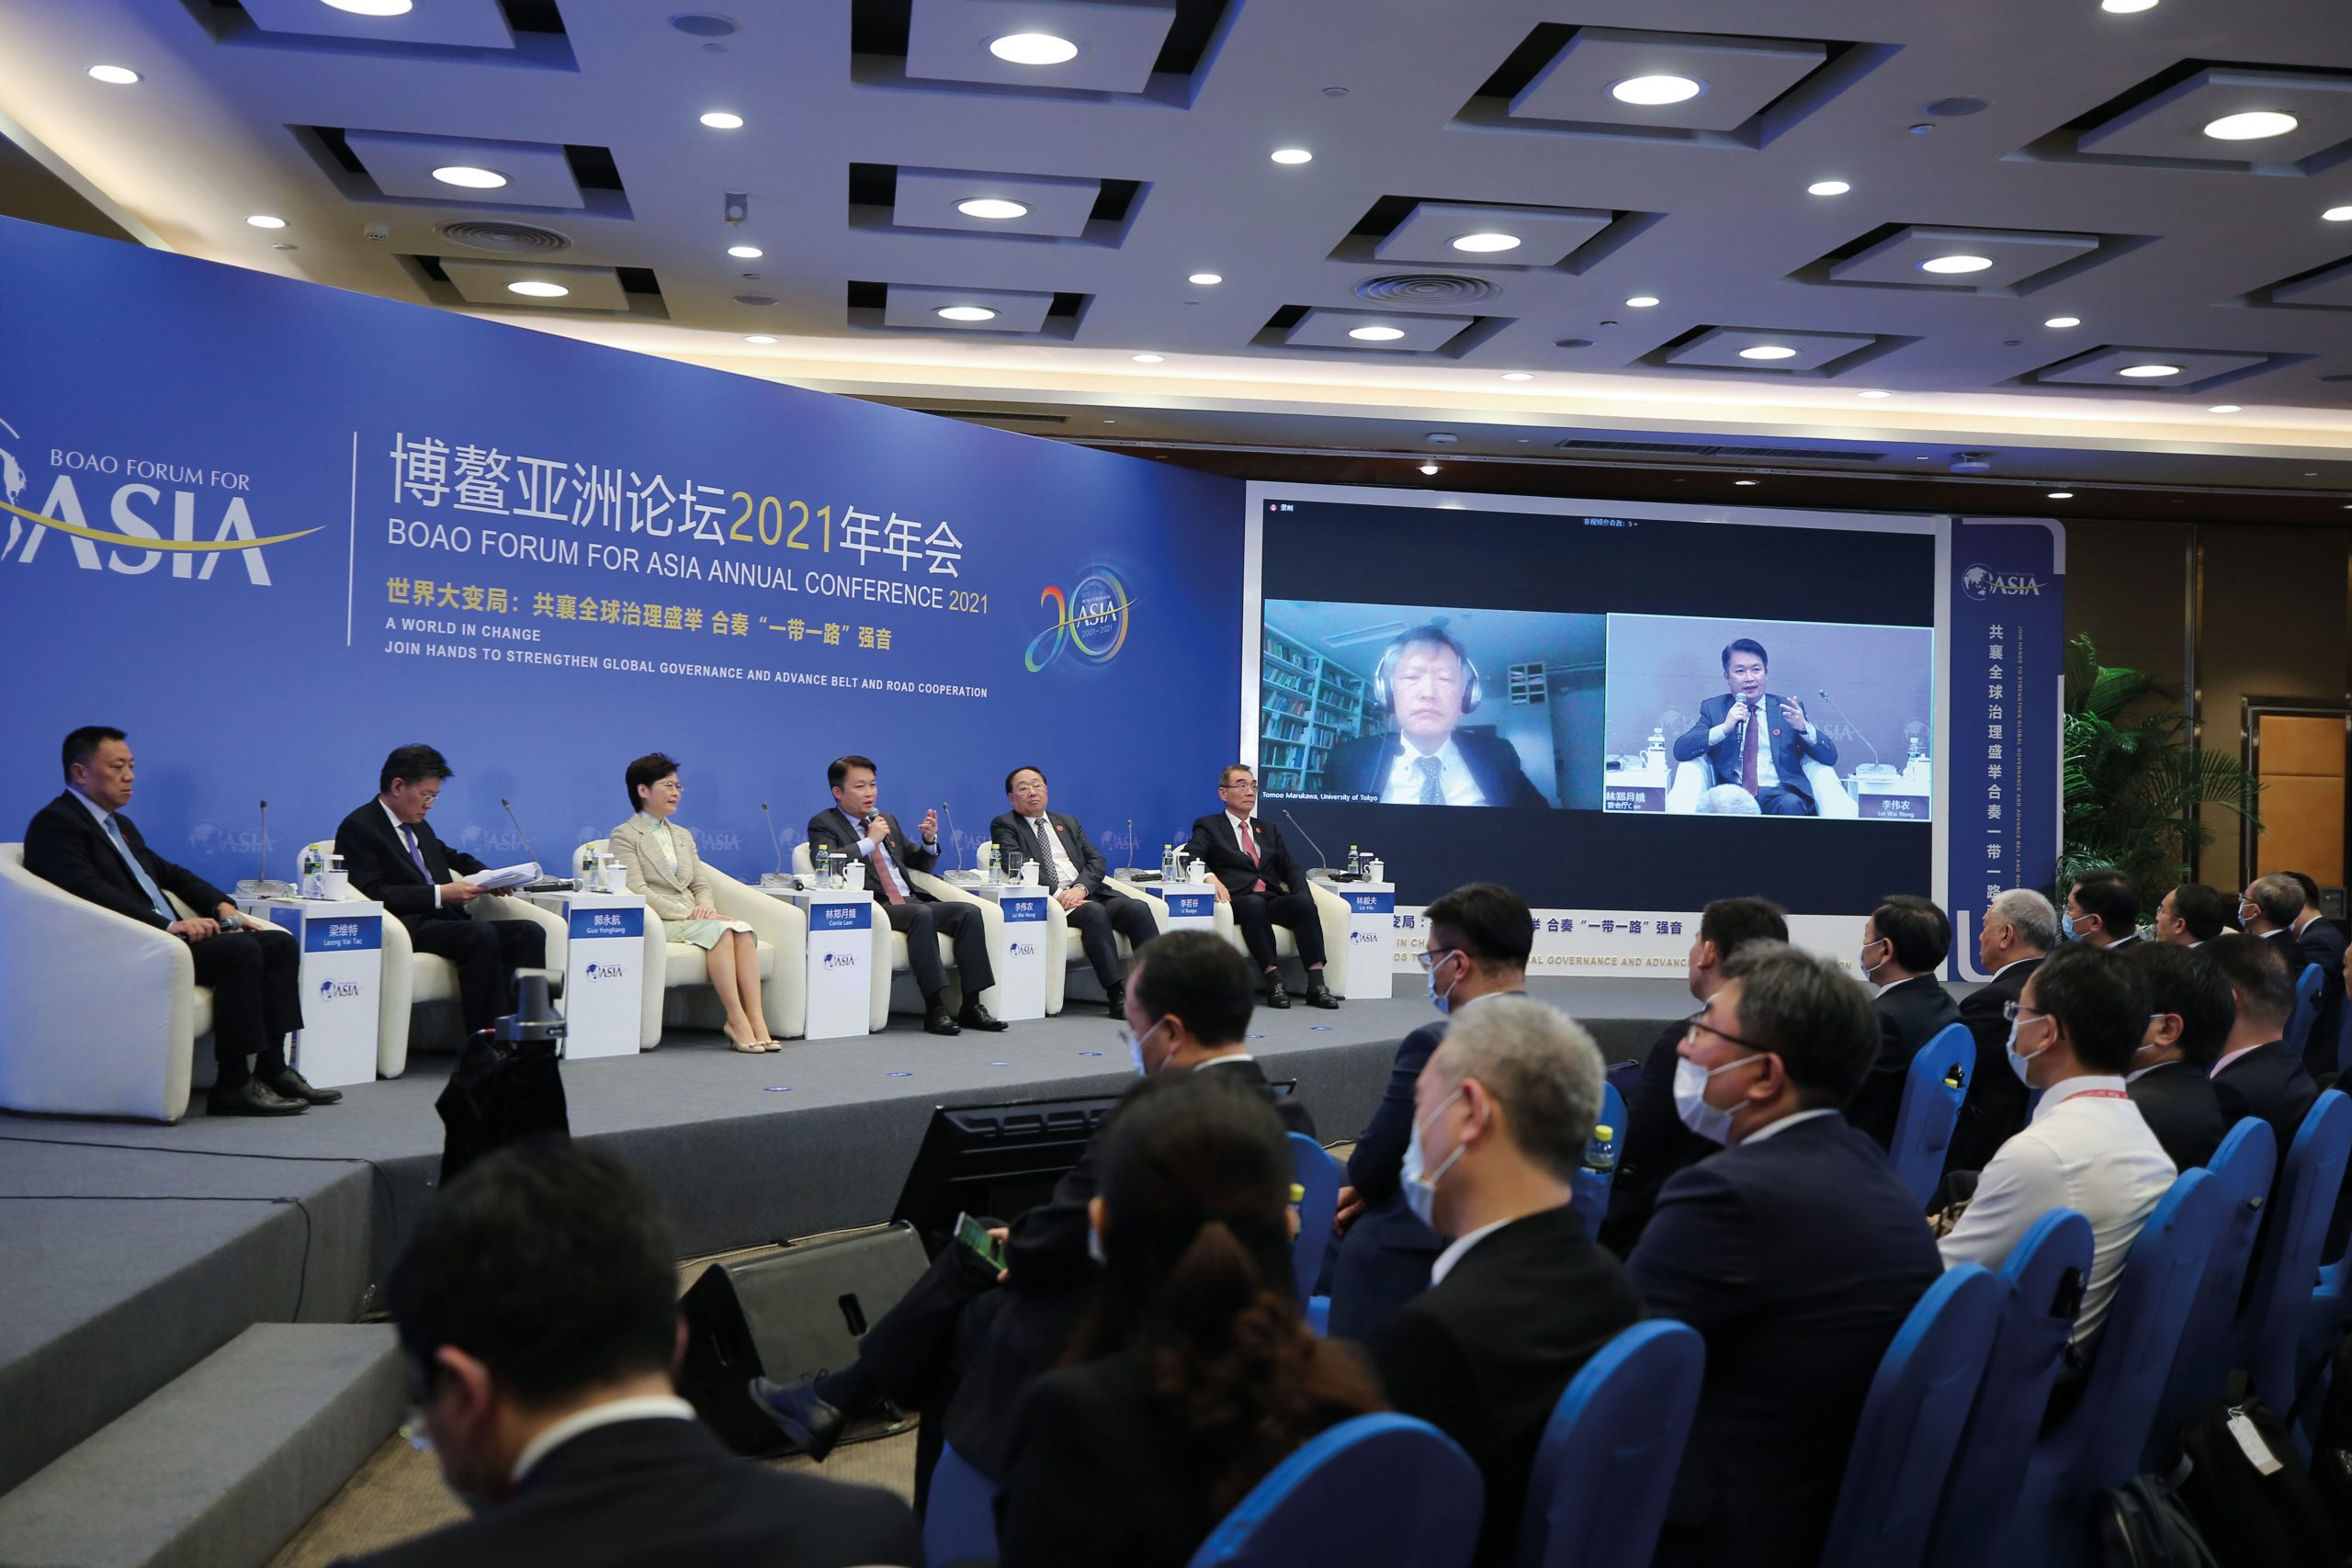 'Invigorate Development through Vibrant City Clusters: The Guangdong-Hong Kong-Macao Greater Bay Area as a Model' session at the Boao Forum for Asia Annual Conference 2021